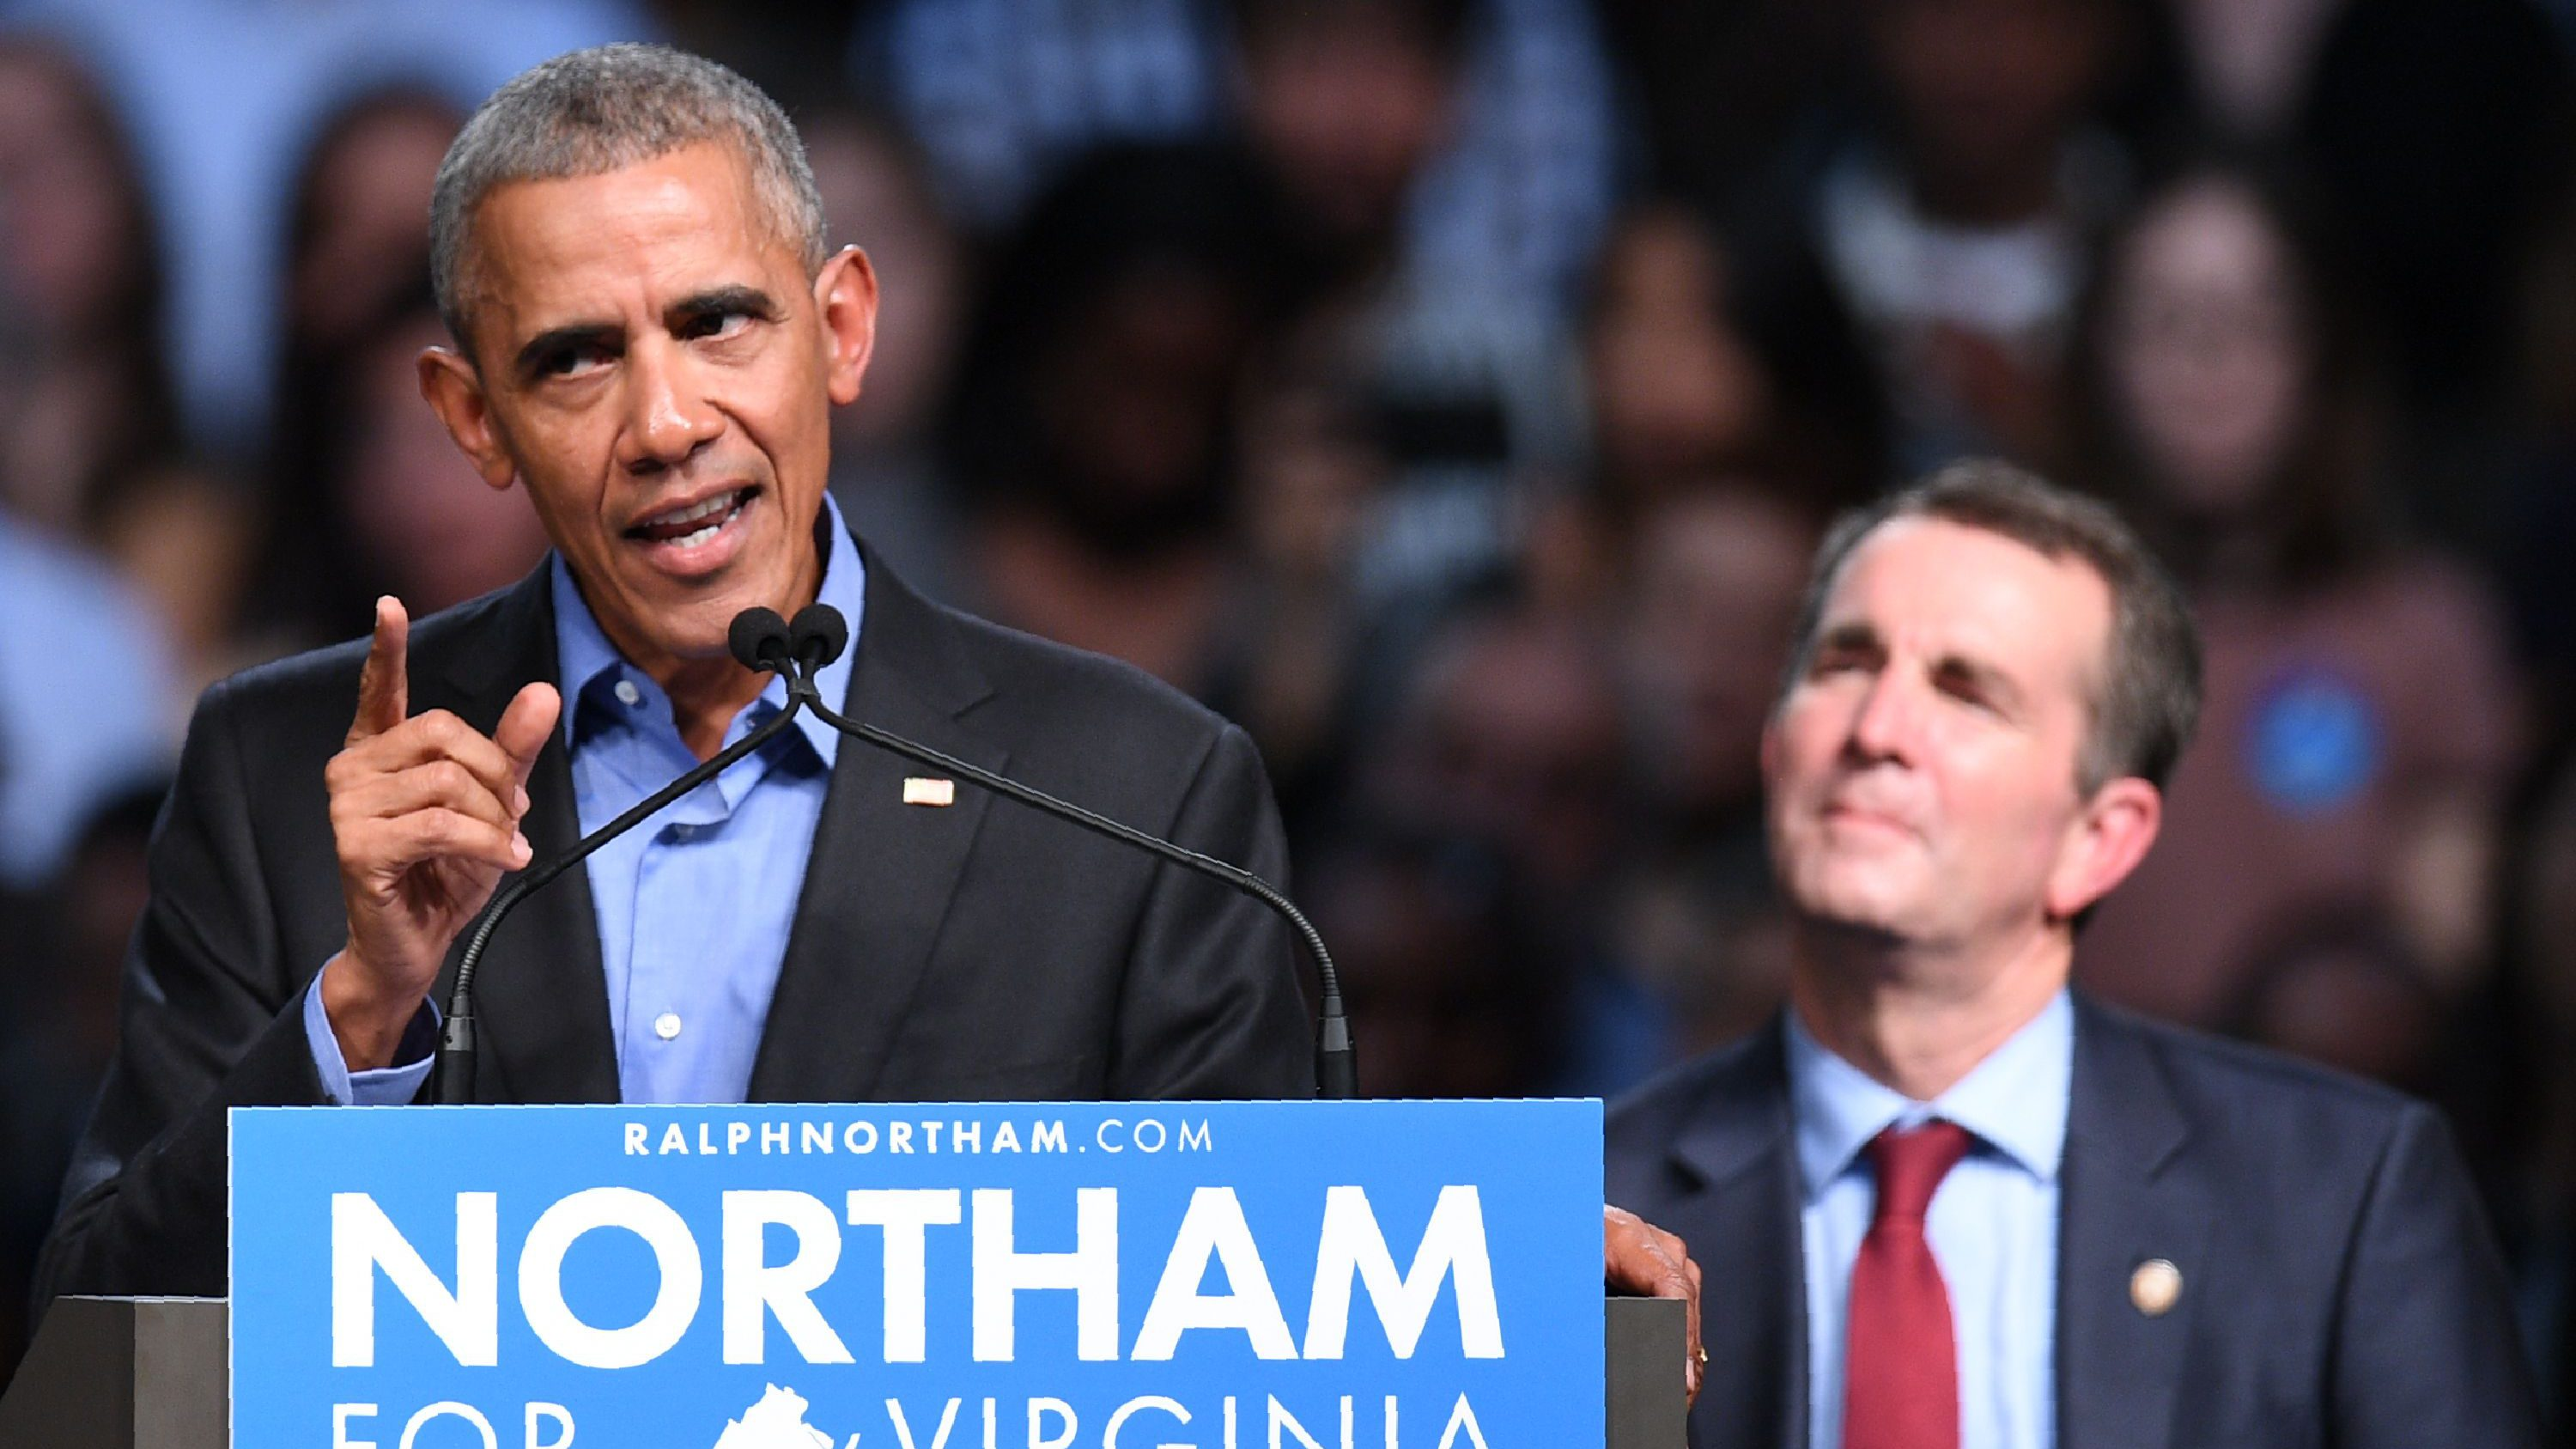 US-POLITICS-OBAMA-NORTHAM